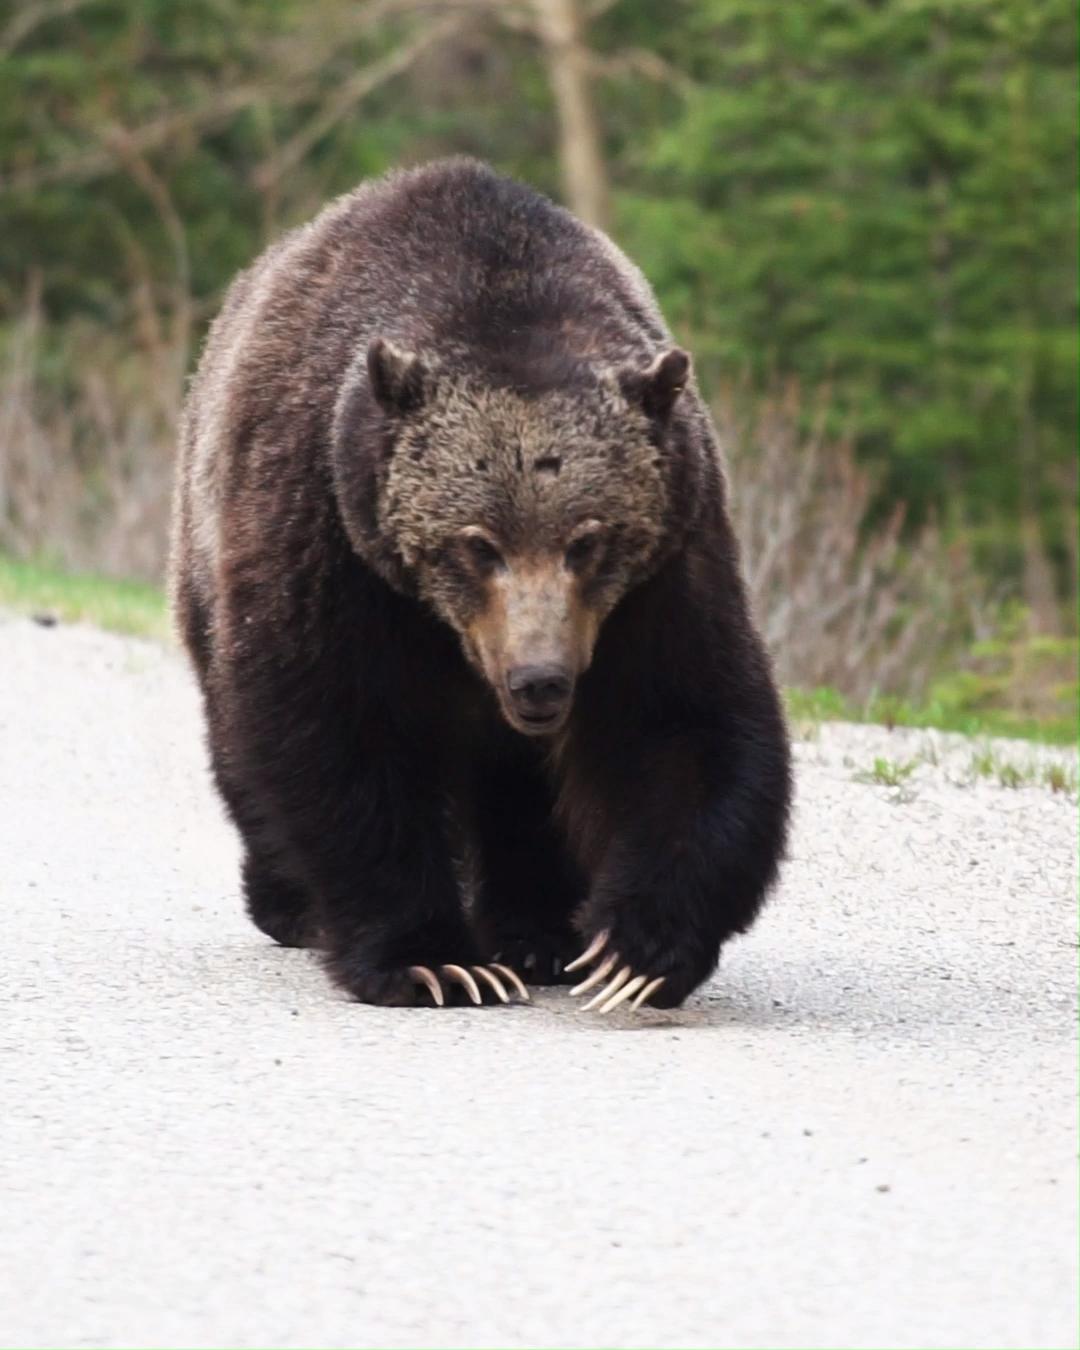 What you need to know before you visit! - Video by: @pat.hoffman  Spotting a bear in the wild is a thrill. But it's not easy and safety should always be the top concern—both your own safety and the bear's. And it's important for visitors to understand the realities of wildlife in Banff.